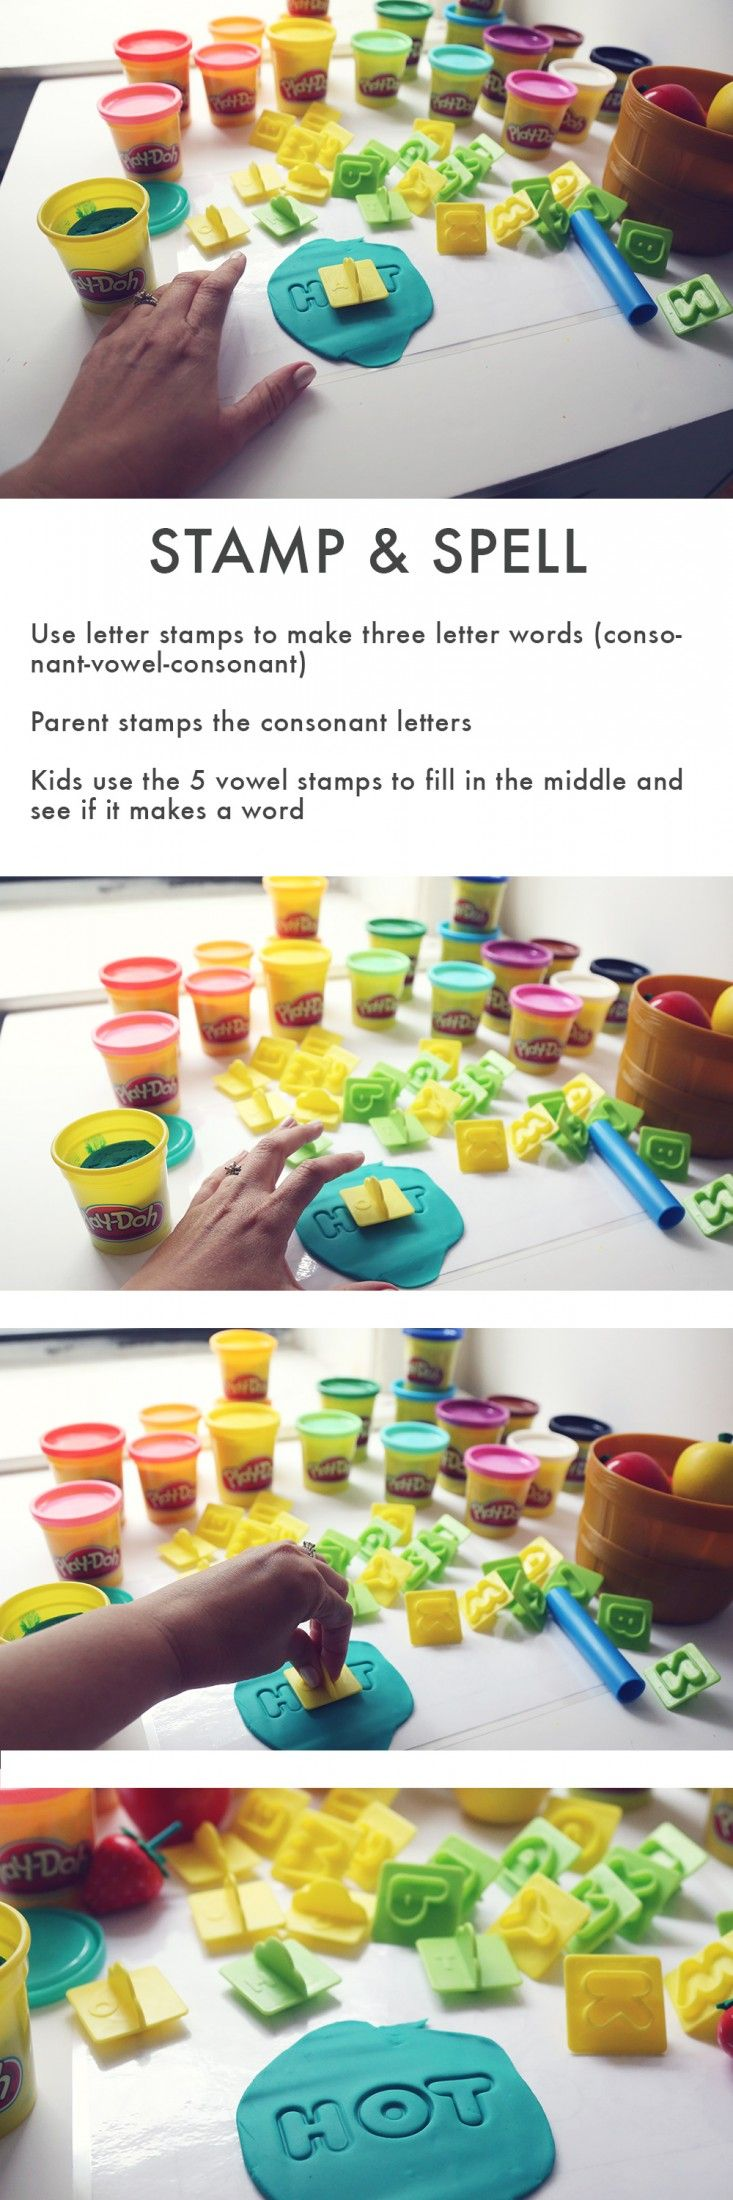 Best 25 three letter words ideas on pinterest 3 letter words stamp and spell how to use letter stamps to make three letter words parent stamps the consonant letters kids use the 5 vowel stamps to fill aljukfo Images